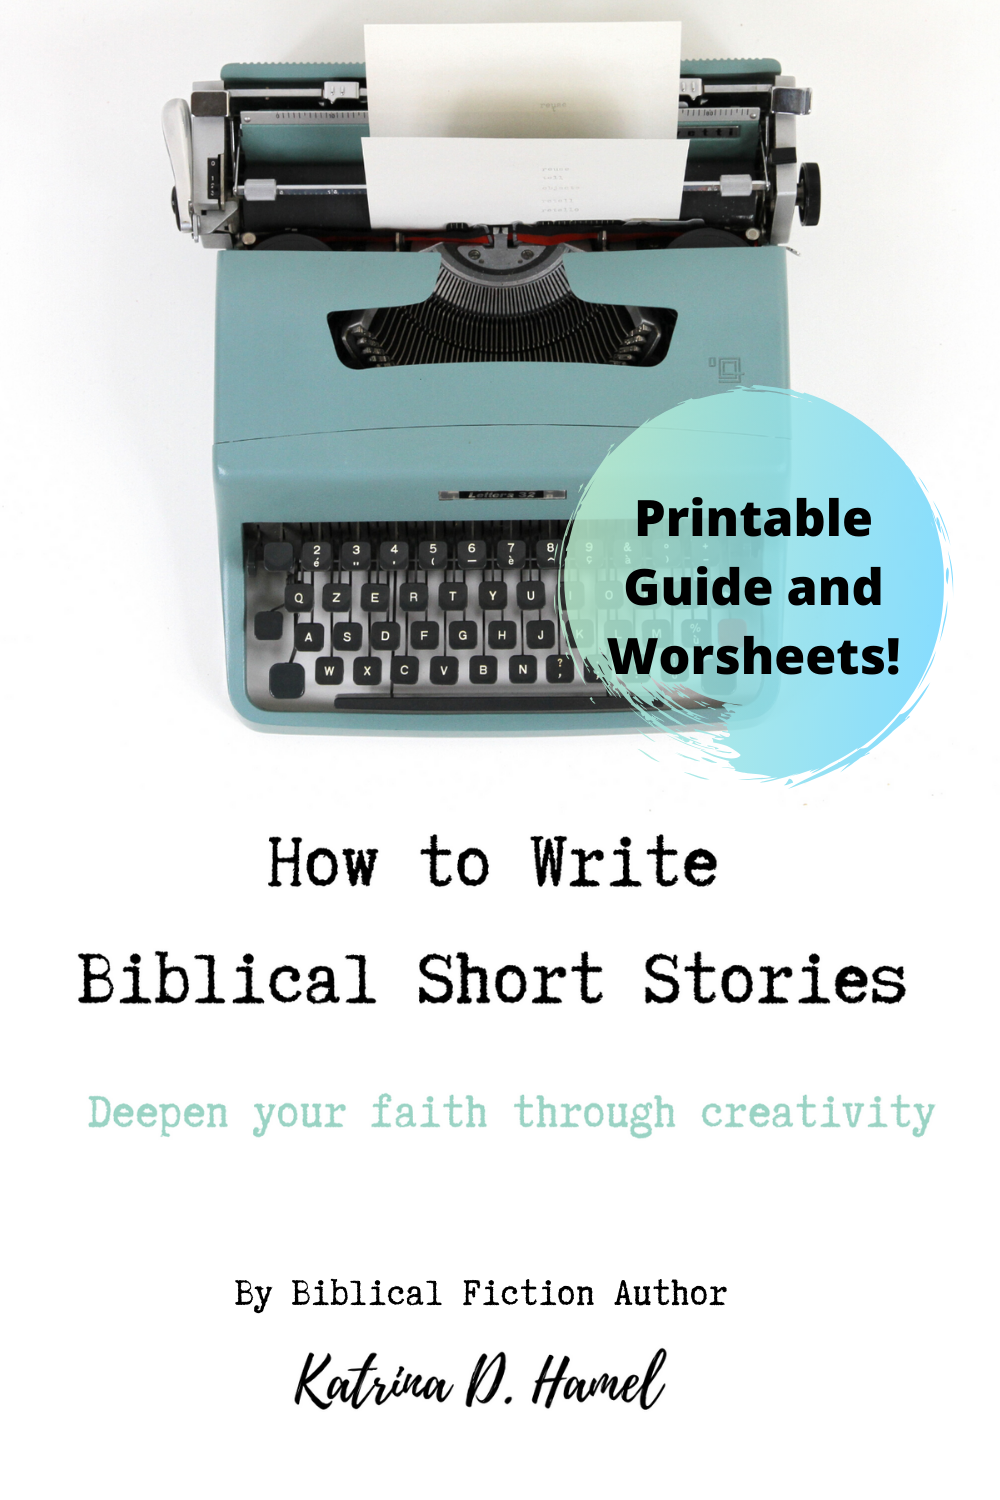 Retro blue typewriter above the text 'How to Write Biblical Short Stories, deepen your faith through creativity by biblical fiction author Katrina D Hamel